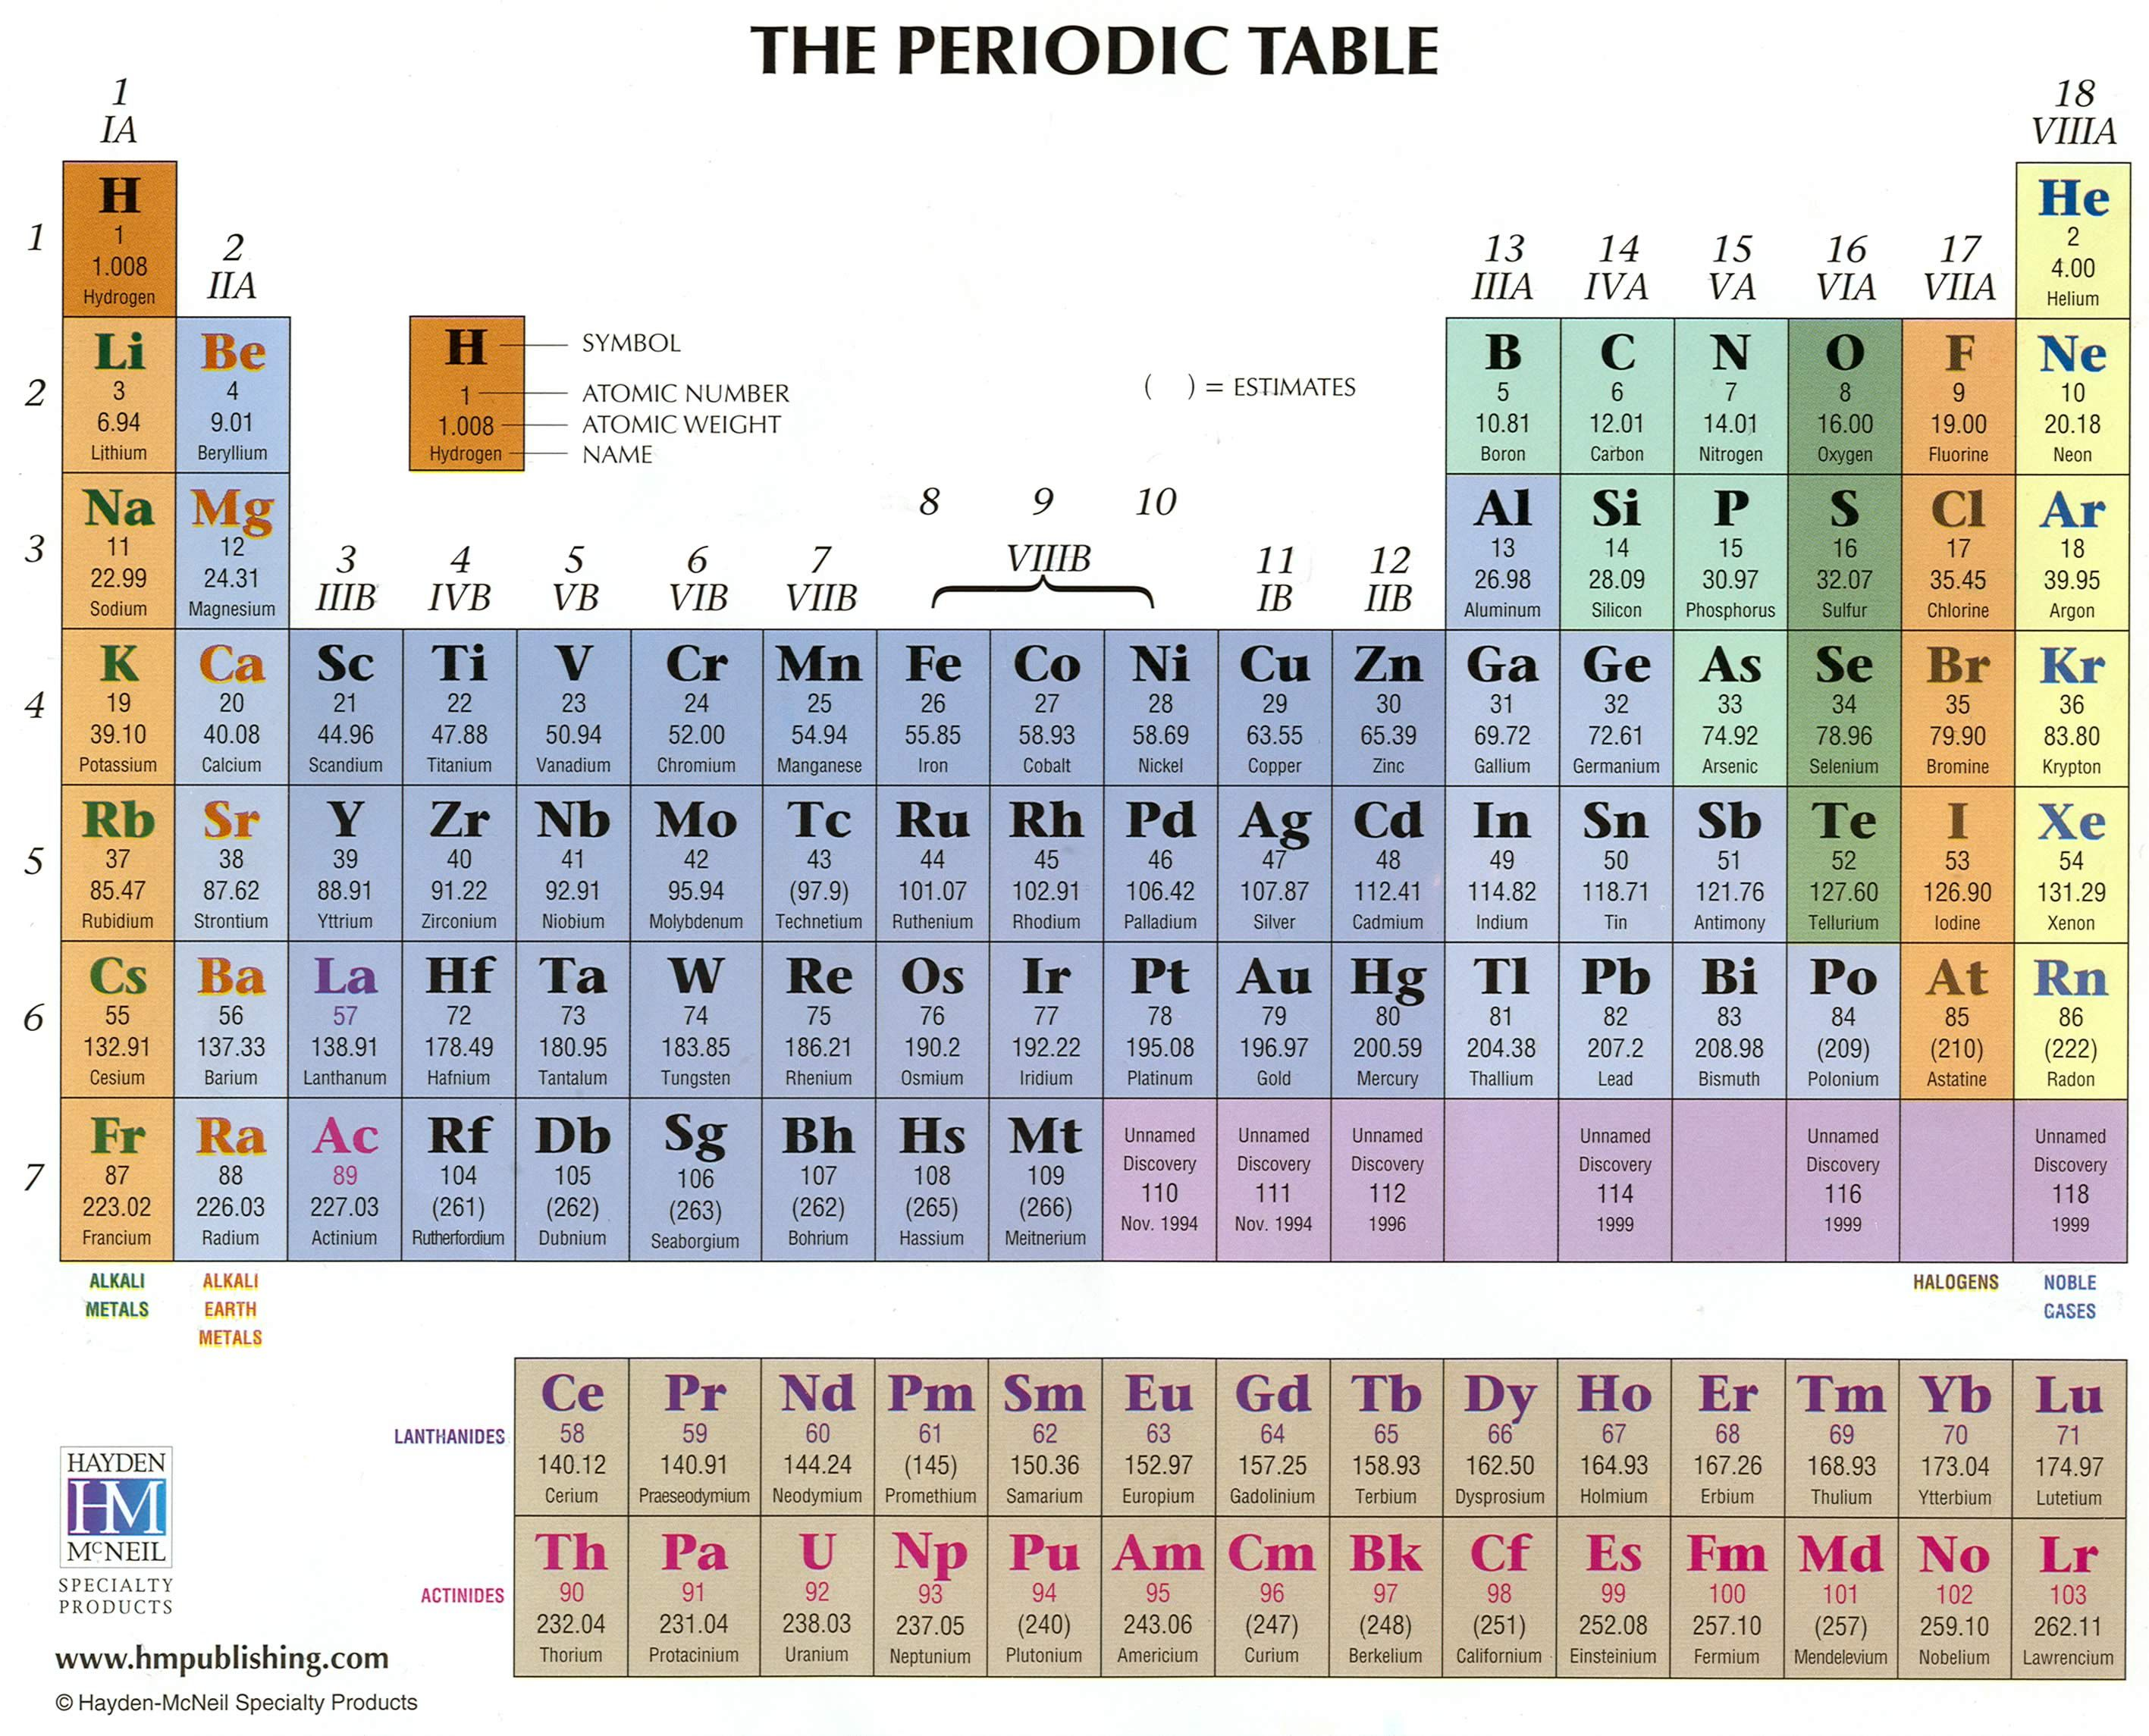 Pic of periodic table periodic table of elements hmpublishing pic of periodic table periodic table of elements hmpublishingg gamestrikefo Choice Image